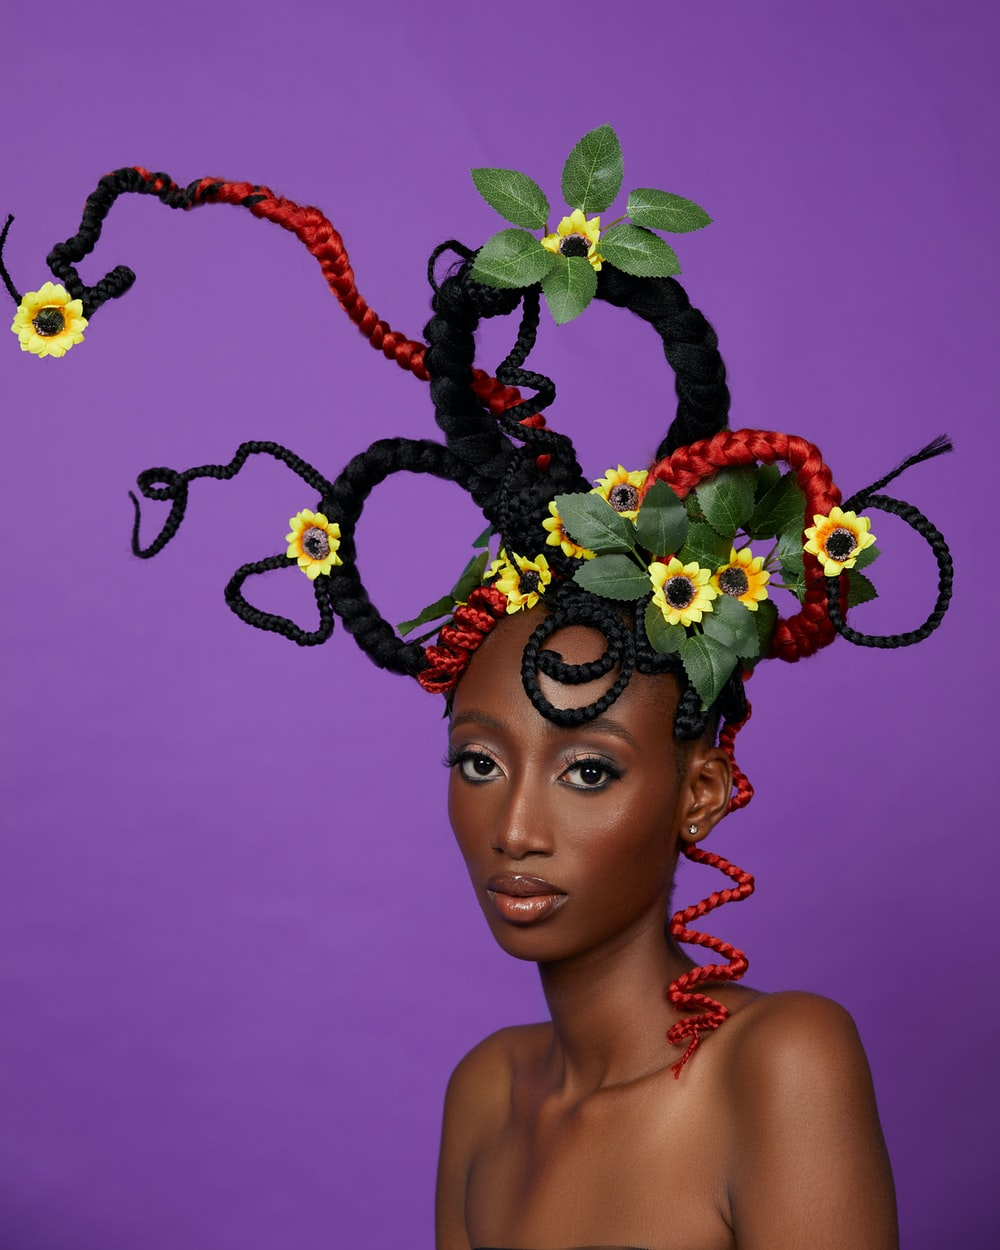 woman with yellow and green floral headdress